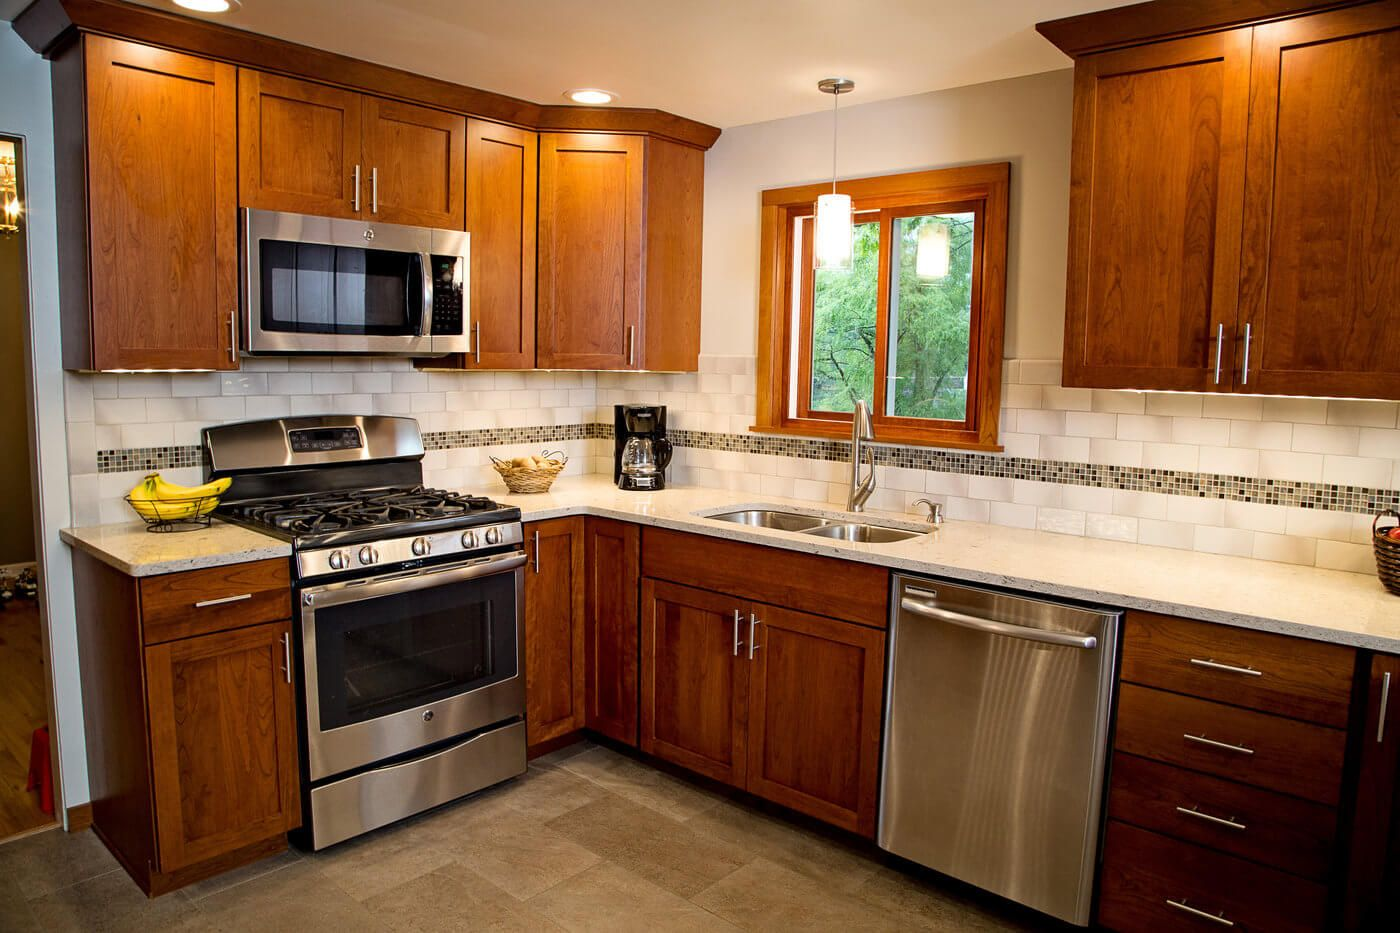 Get Ideas For Kitchen Bath Remodeling Envision Kitchen Bath Remodel In Binghamton Ny In 2020 Bath Remodel Kitchen Kitchen And Bath